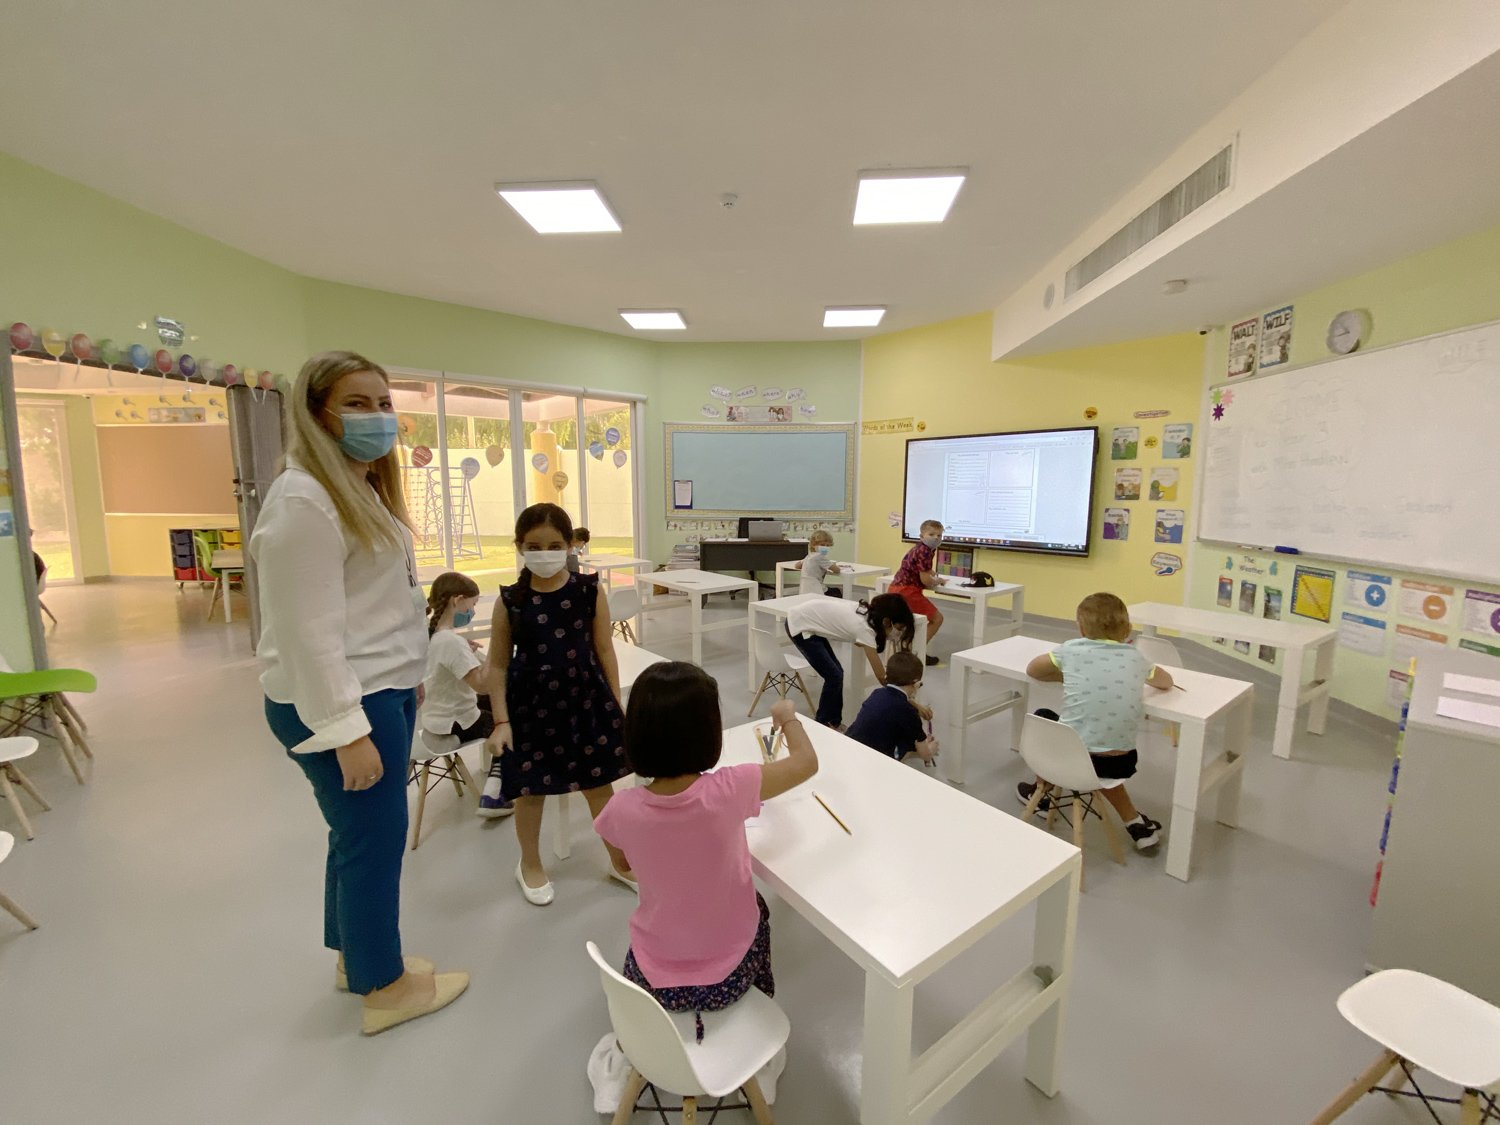 Ghaf Primary School - Students Learning Environment